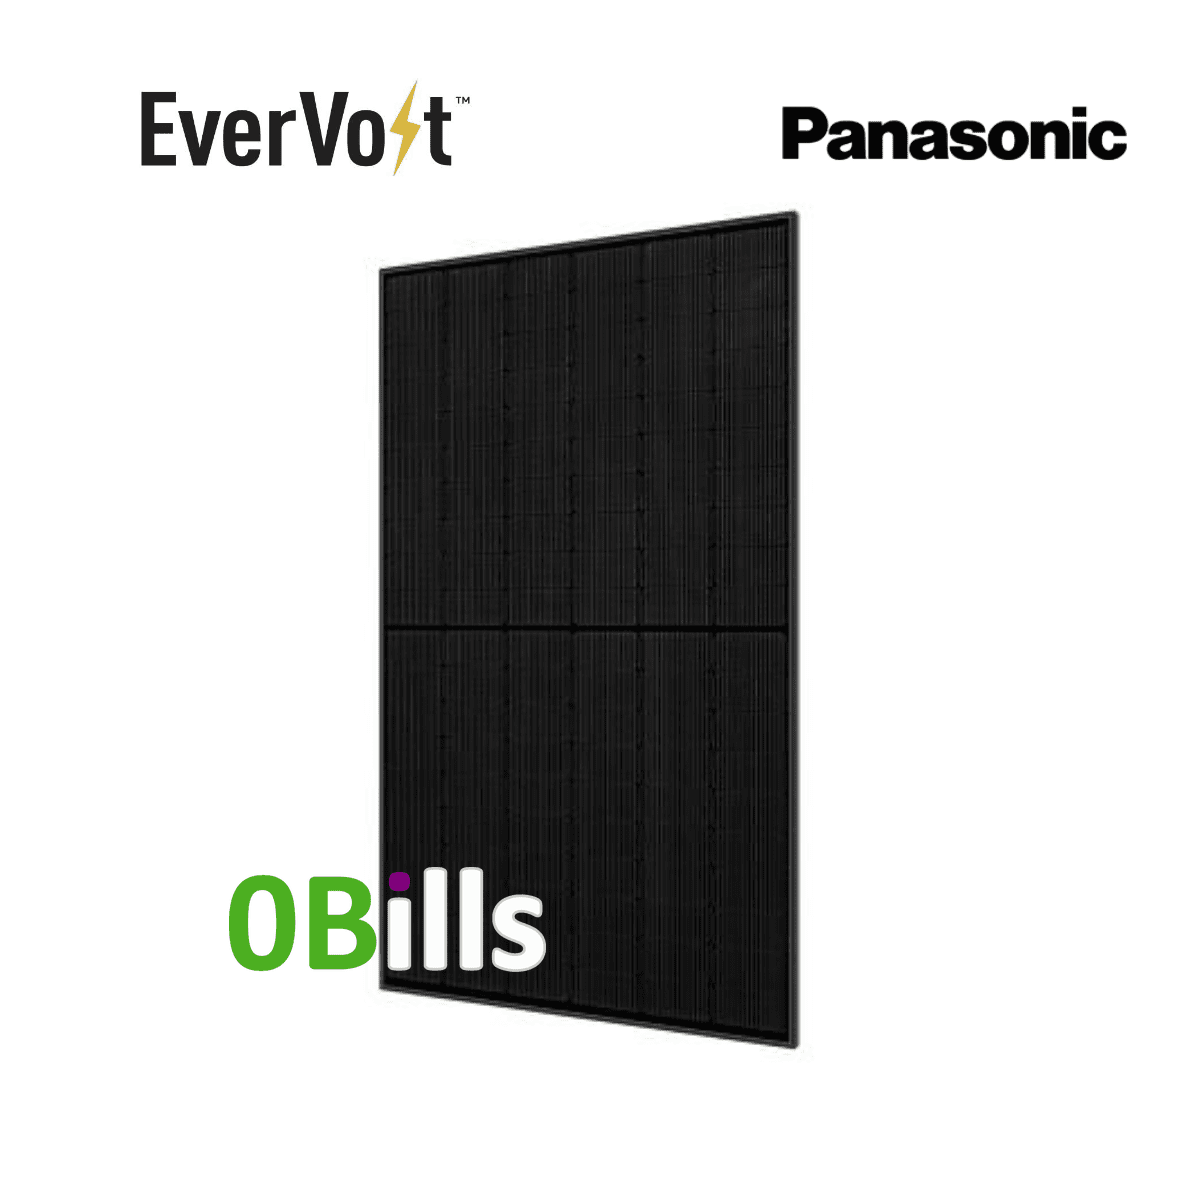 Panasonic EverVolt EVPV350K 350W Solar Panel Black Series for Sale